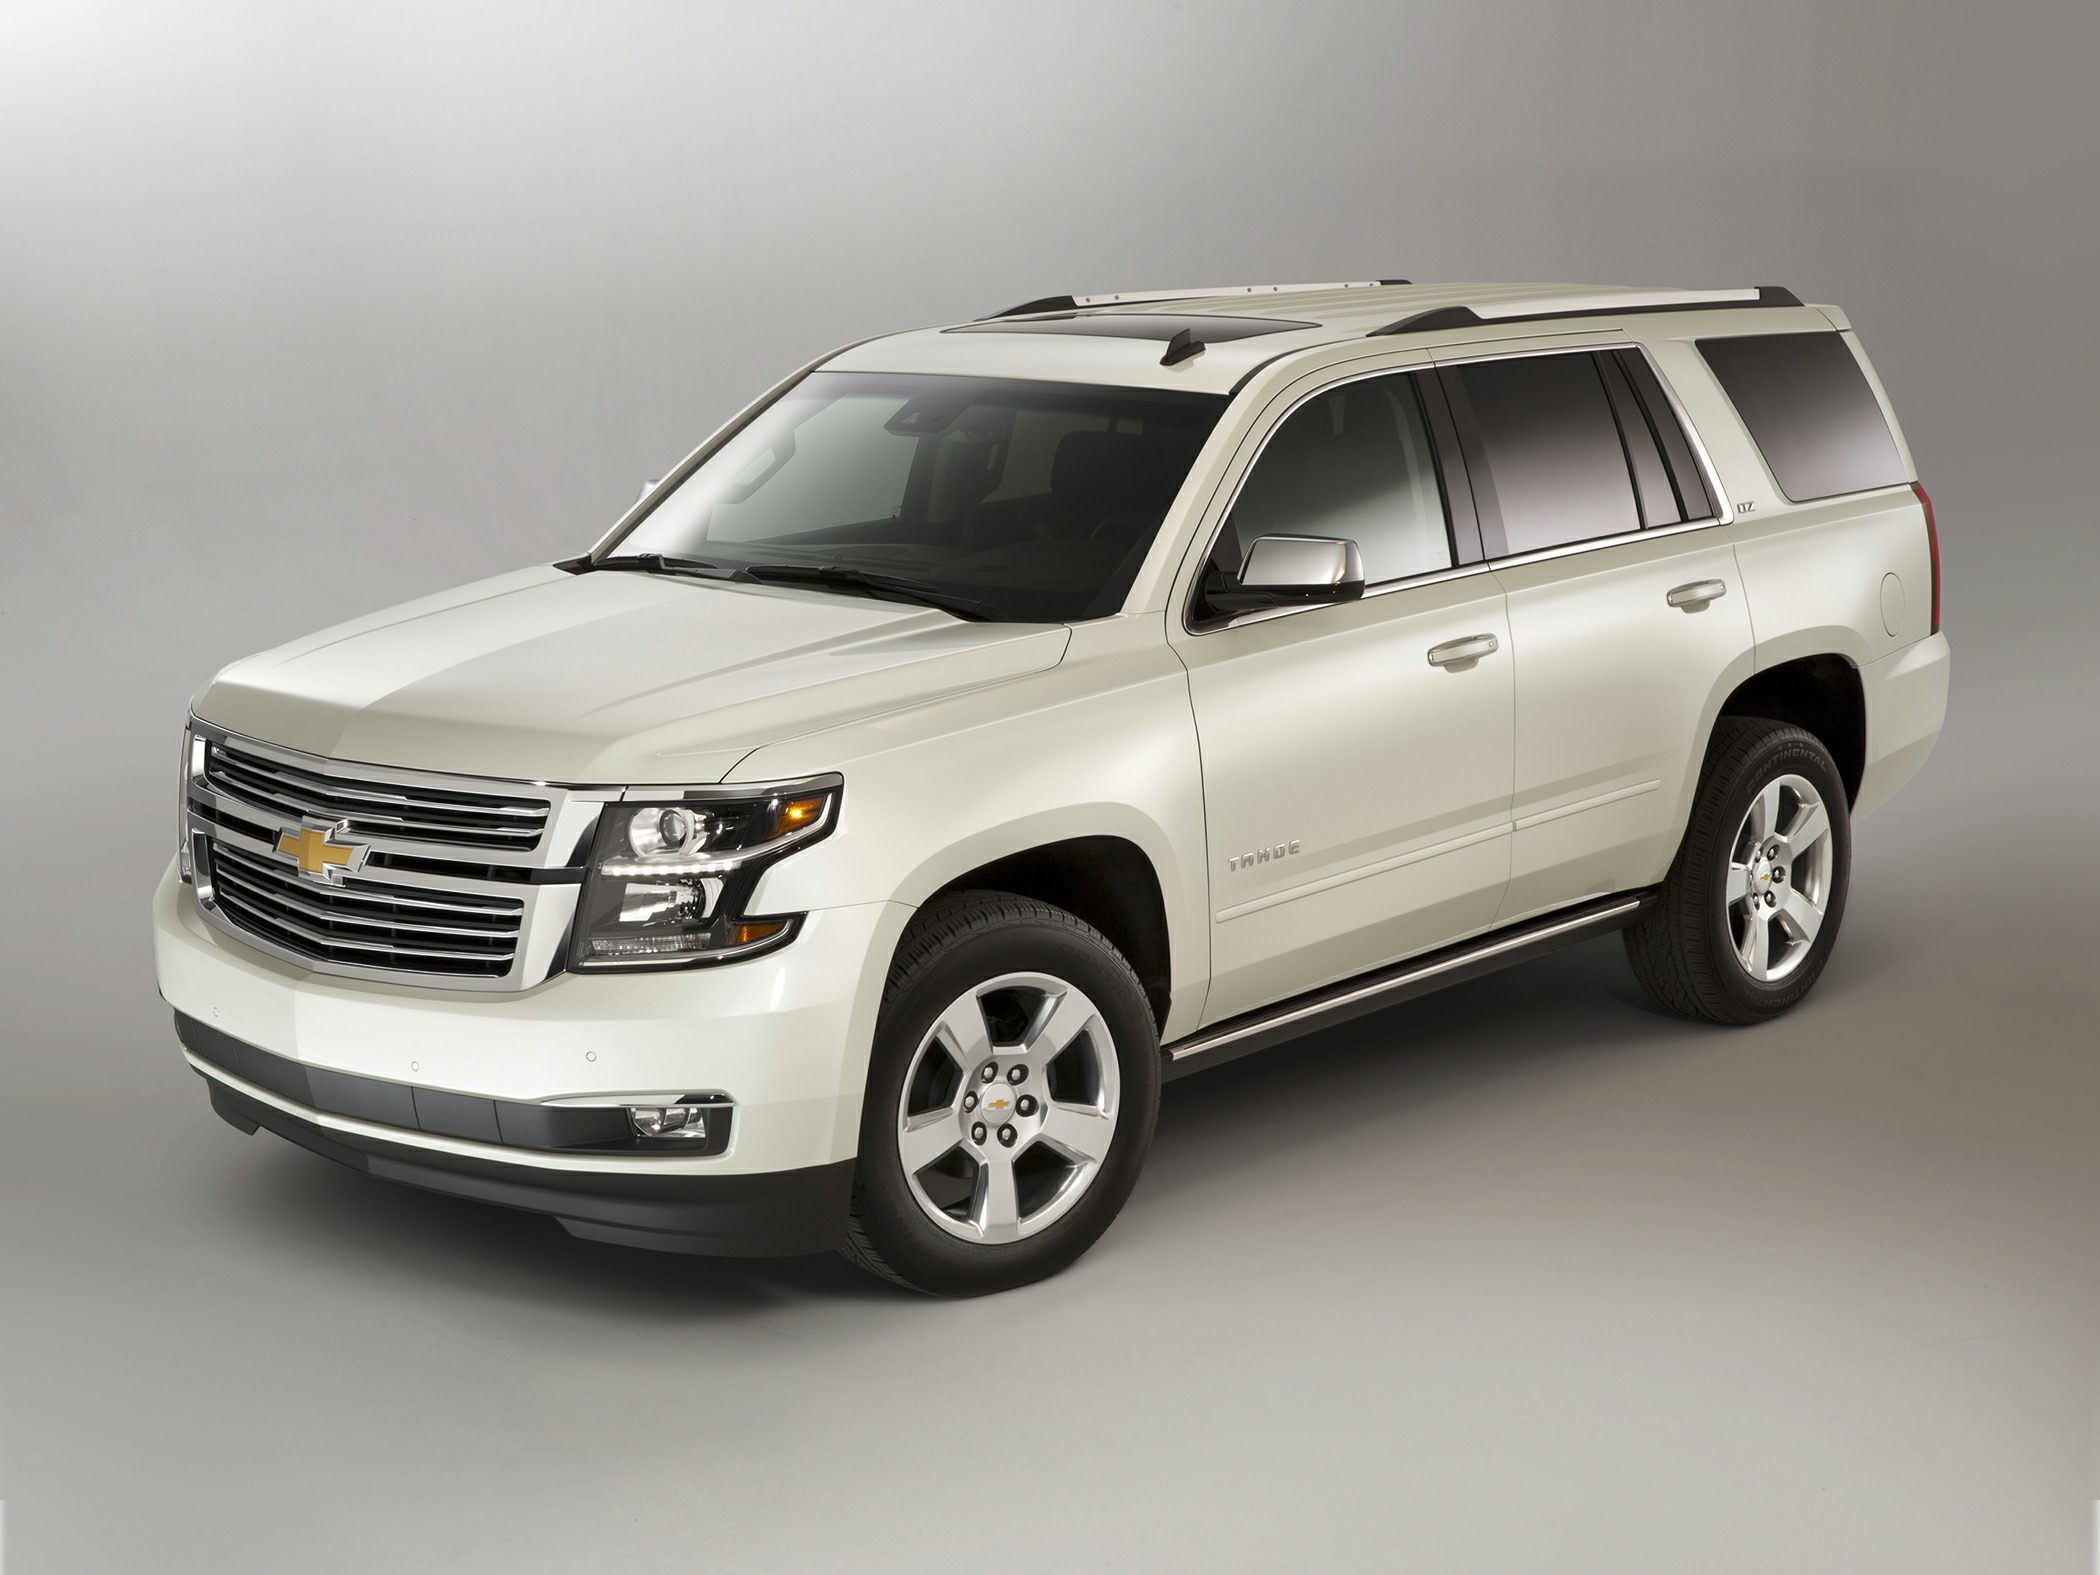 2015 chevrolet tahoe ppv photo gallery autoblog. Black Bedroom Furniture Sets. Home Design Ideas